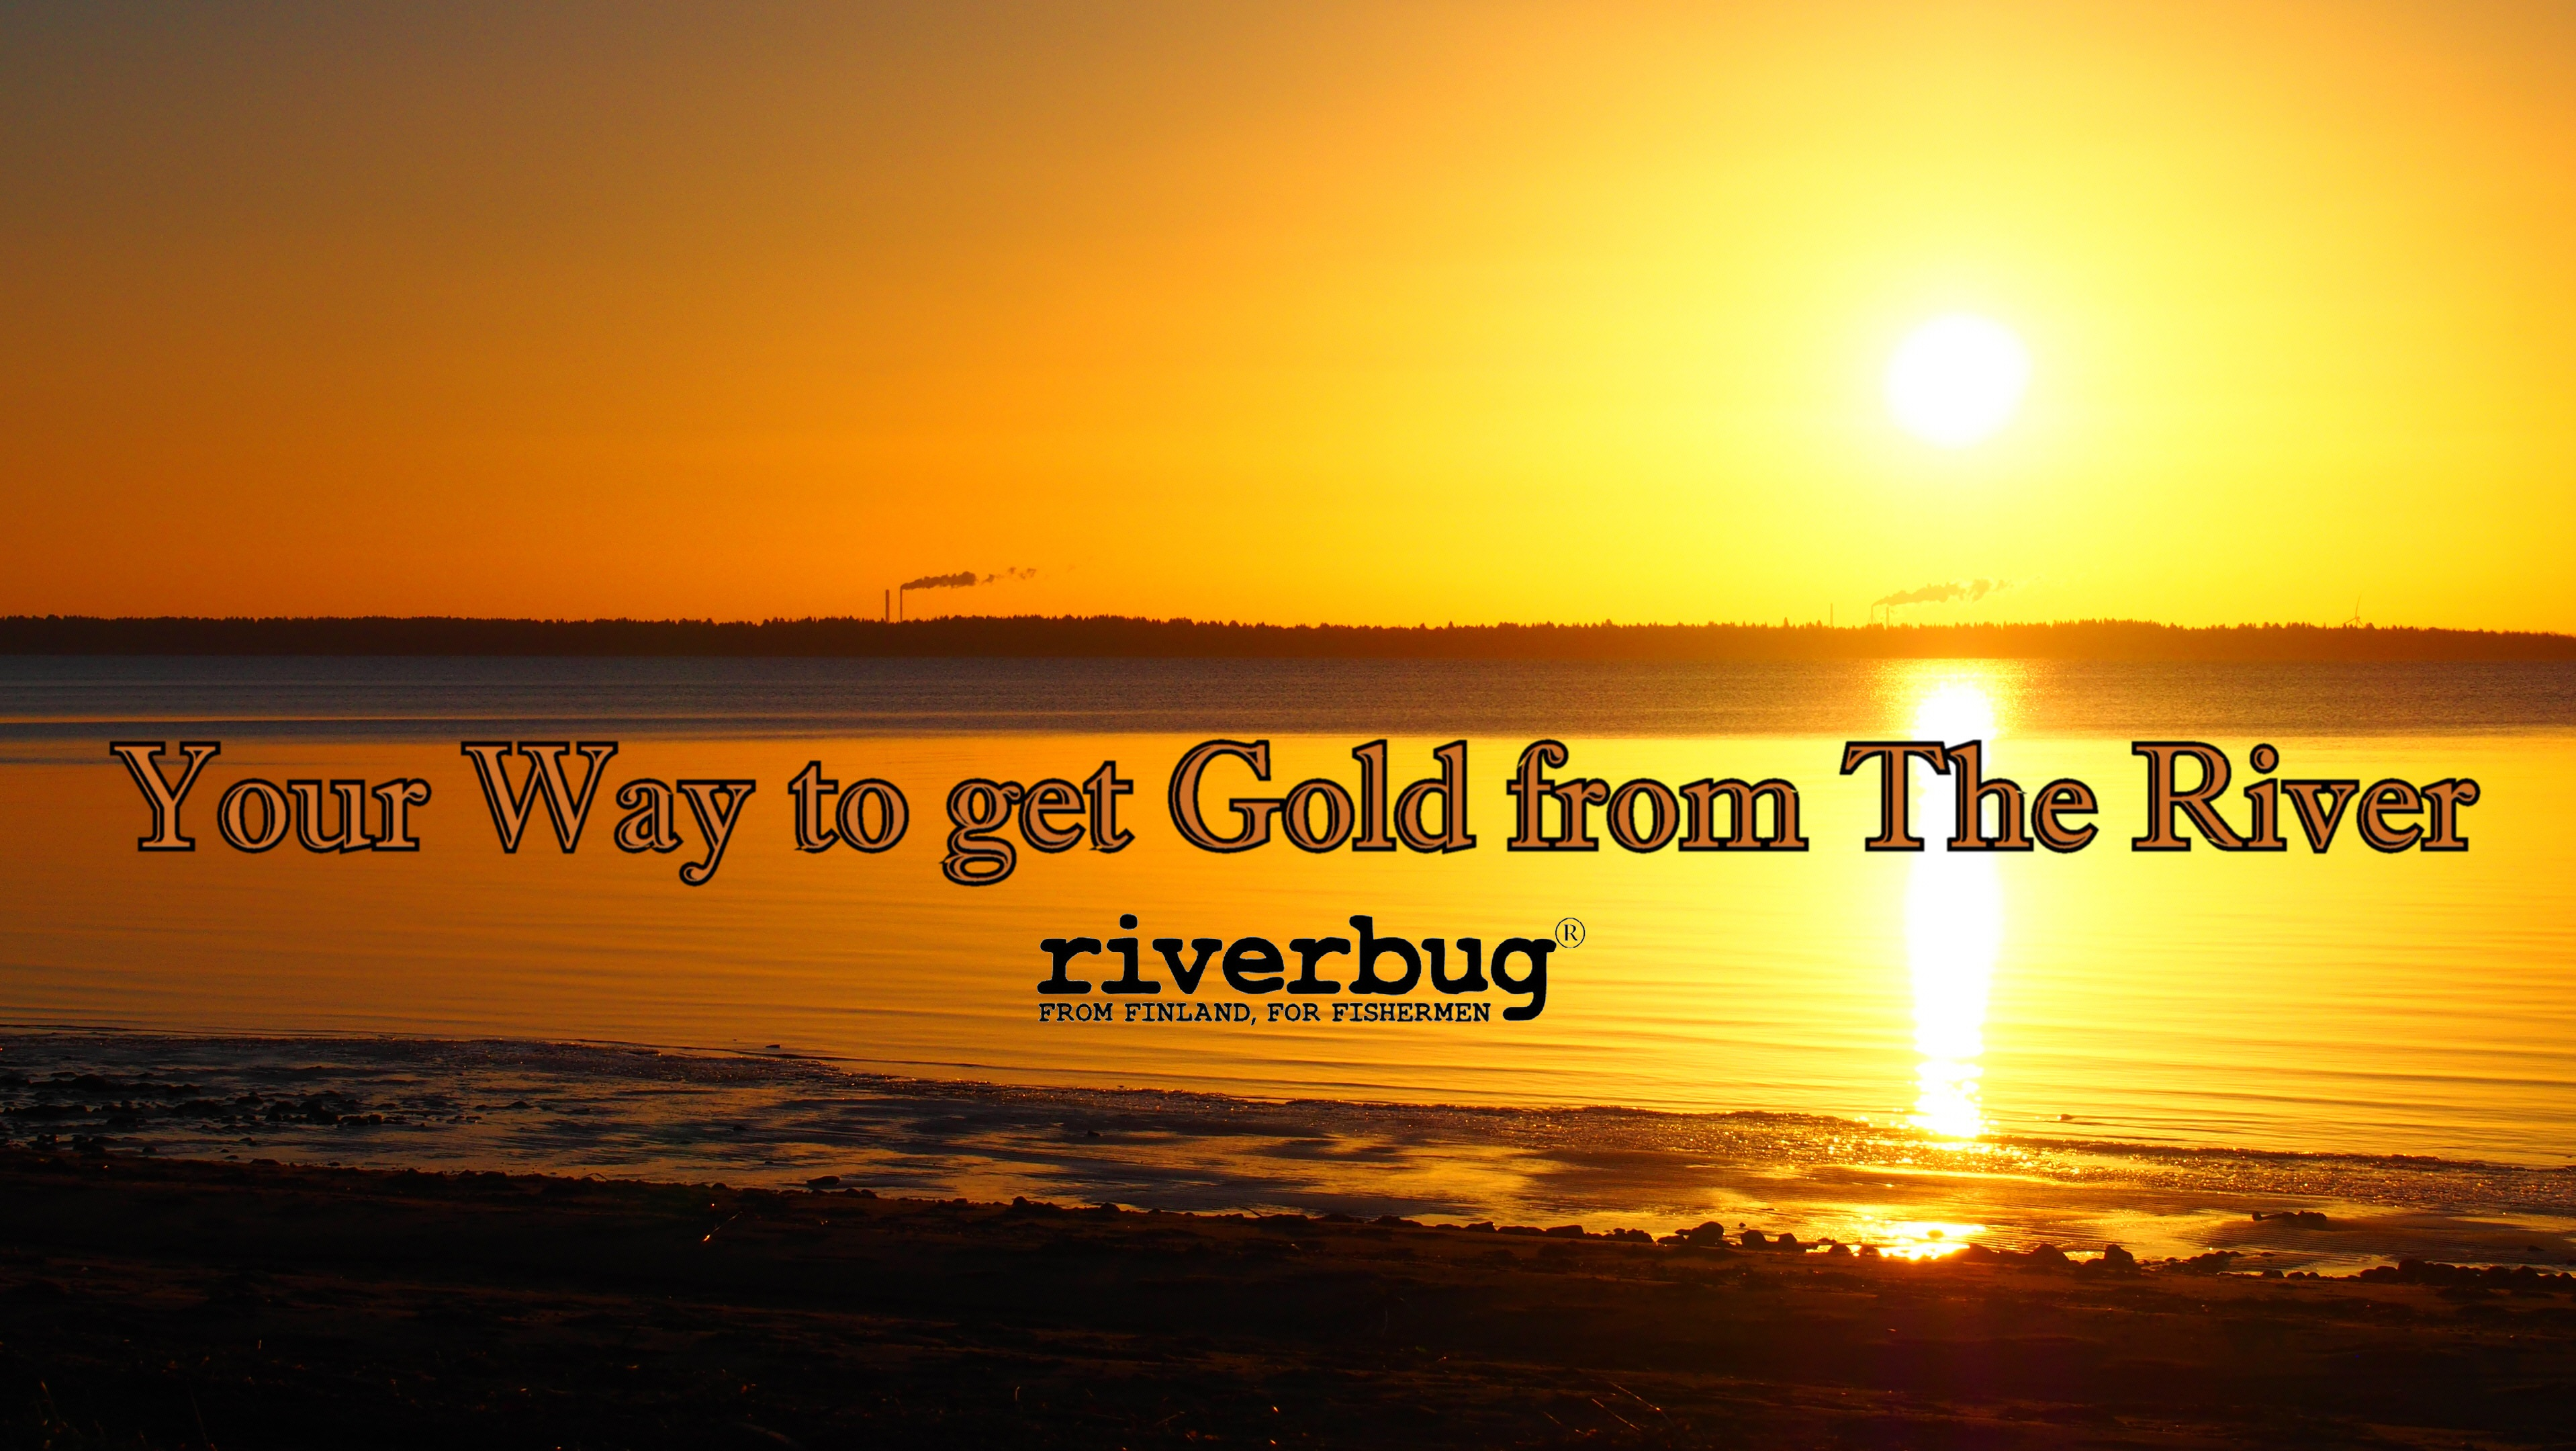 RiverBug Fly Tying and Golden scenery in City of Oulu, Finland